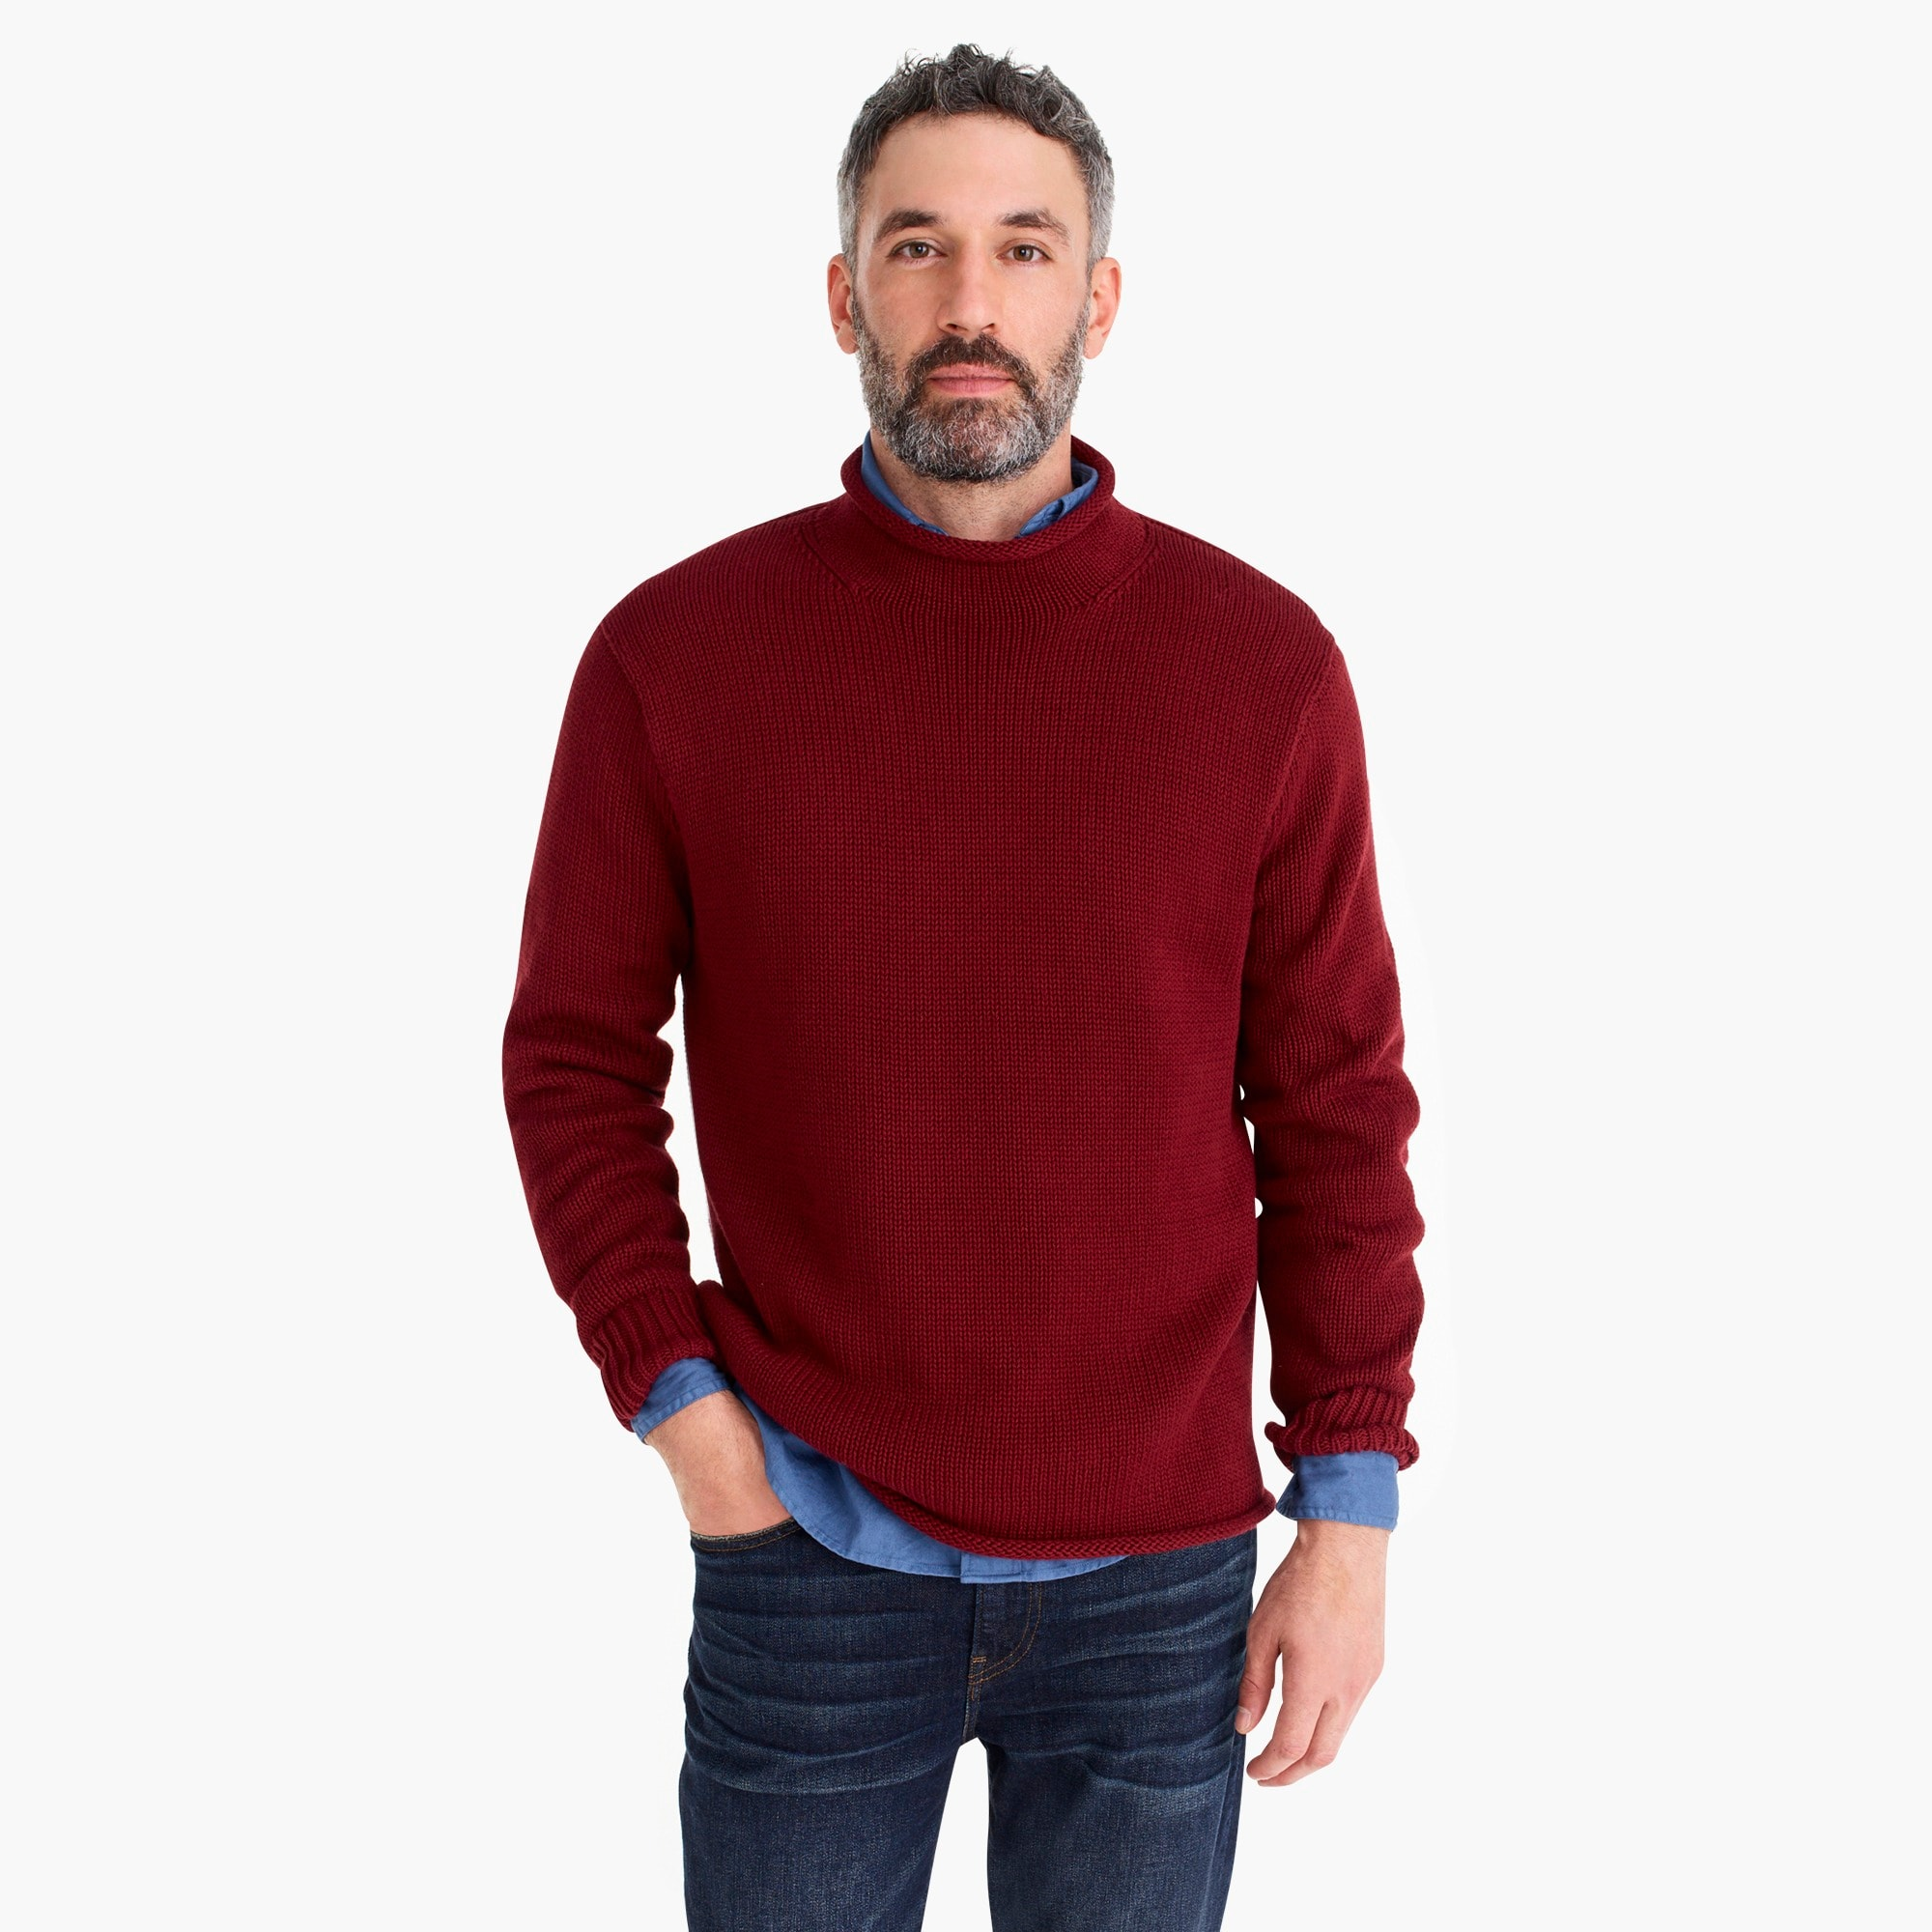 Image 2 for Unisex 1988 cotton rollneck™ sweater